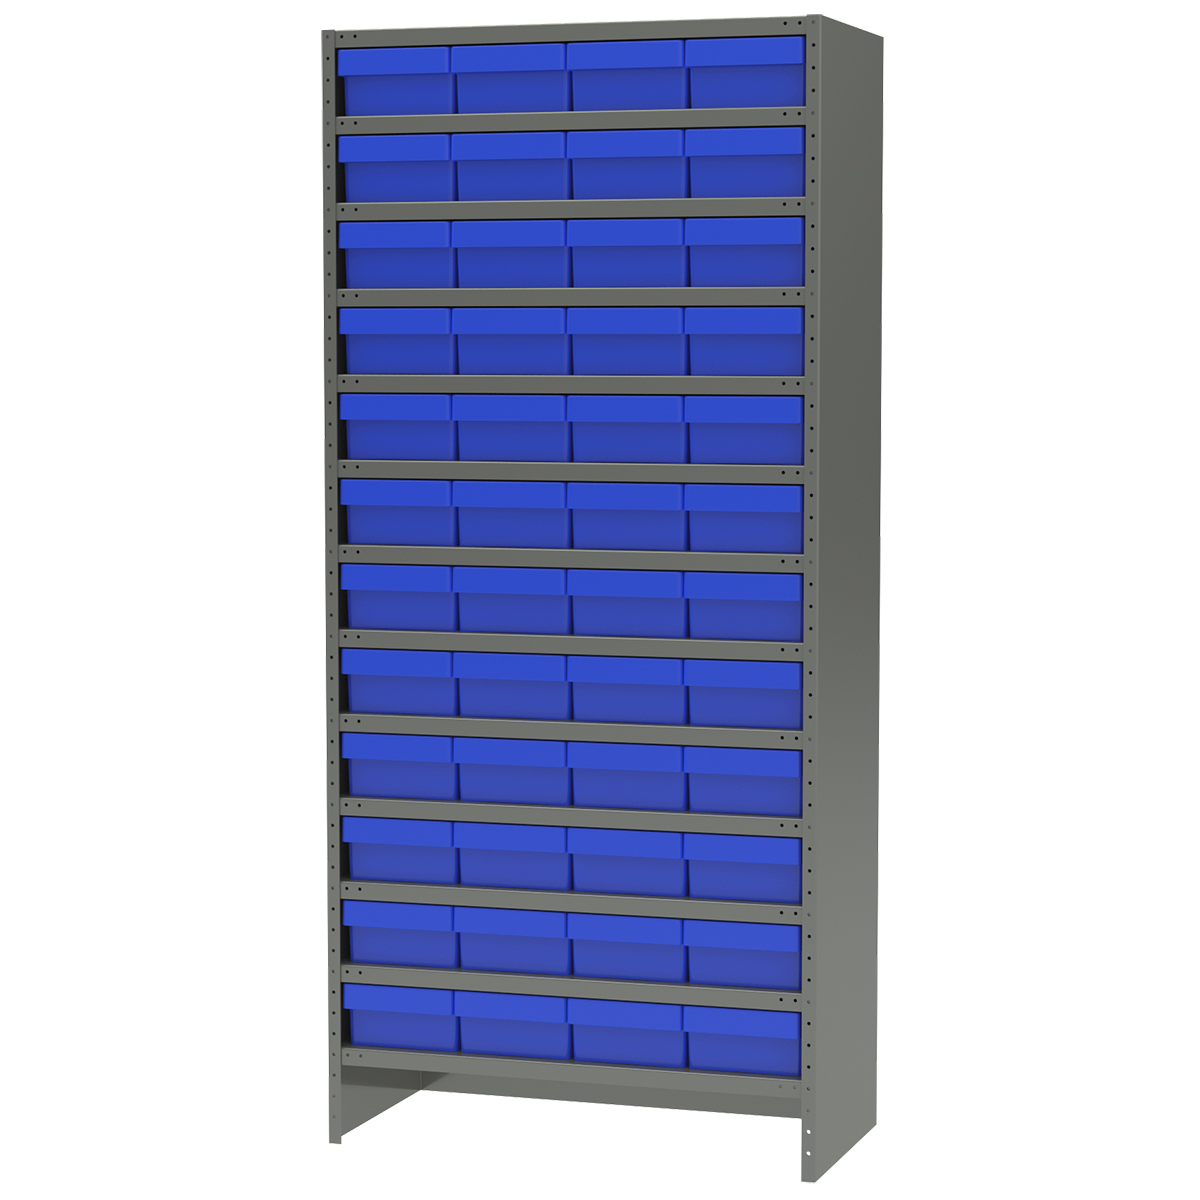 Enclosed Steel Shelving Kit, 18x36x79, 48 AkroDrawers, Gray/Blue.  This item sold in carton quantities of 1.